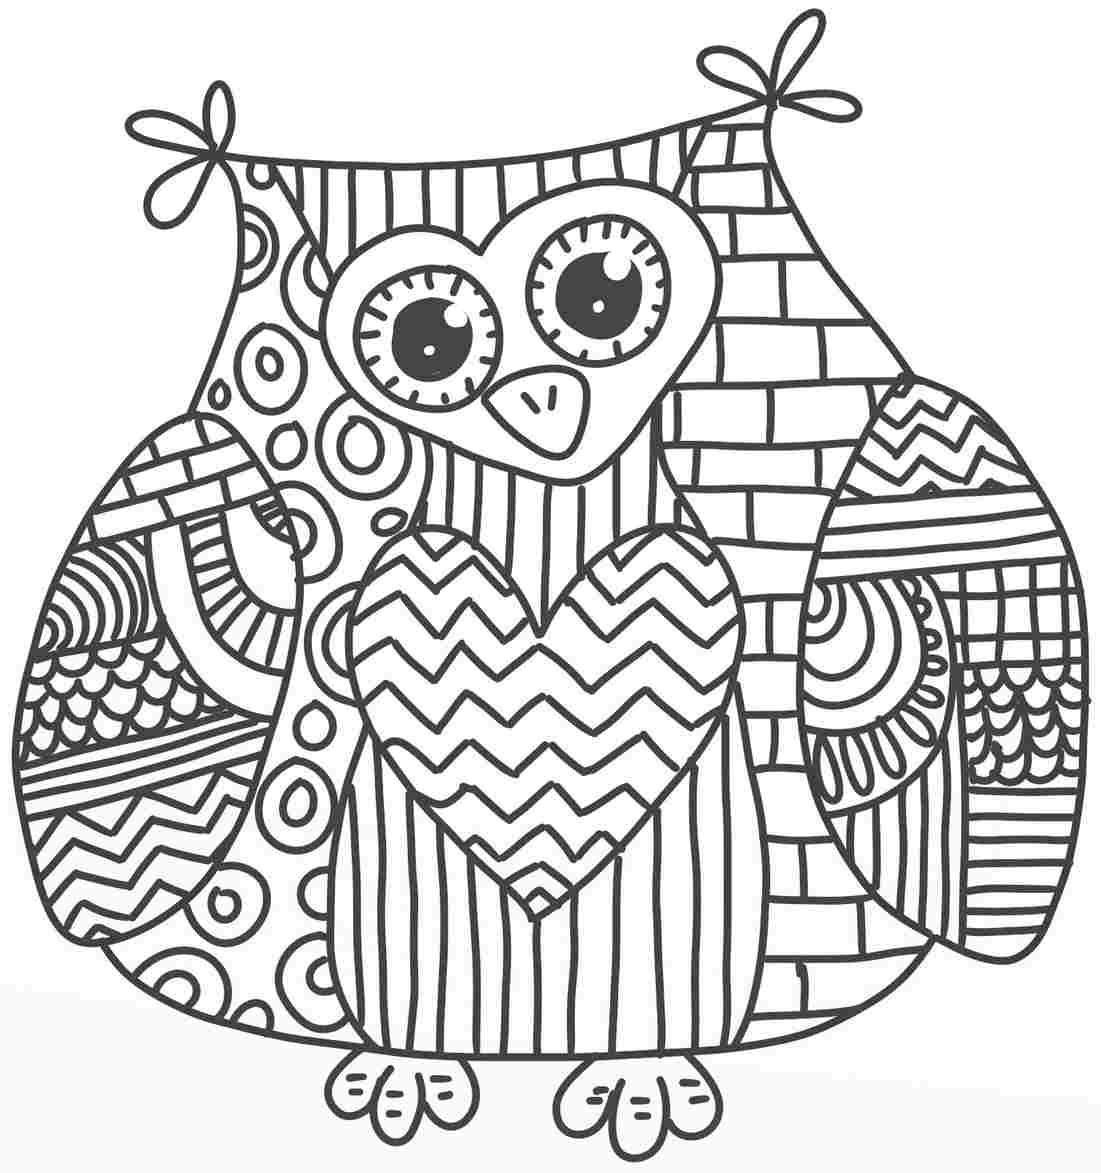 Owl coloring pages free - Too Hard Owl Coloring Page Free Online Printable Coloring Pages Sheets For Kids Get The Latest Free Too Hard Owl Coloring Page Images Favorite Coloring